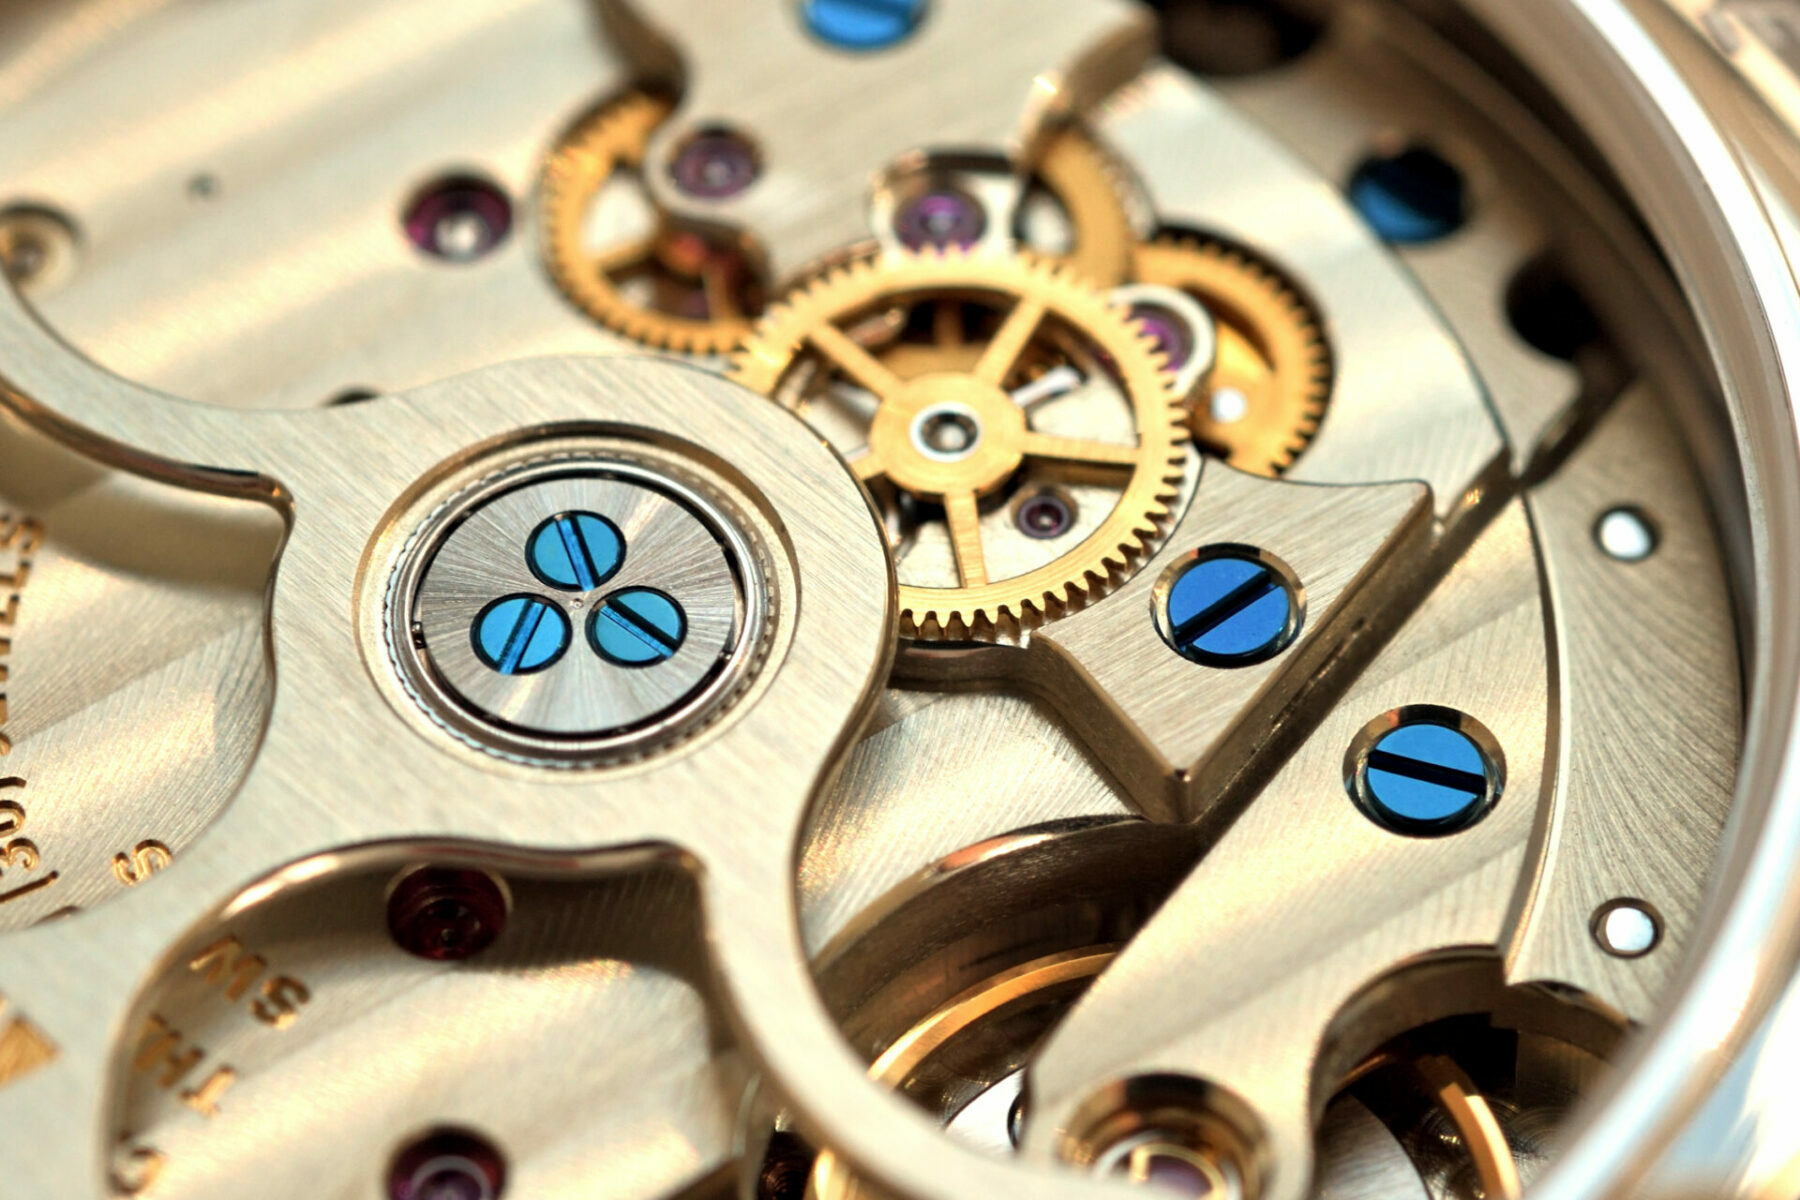 【F】How Watches Work: What Are Blued Screws? (2021)